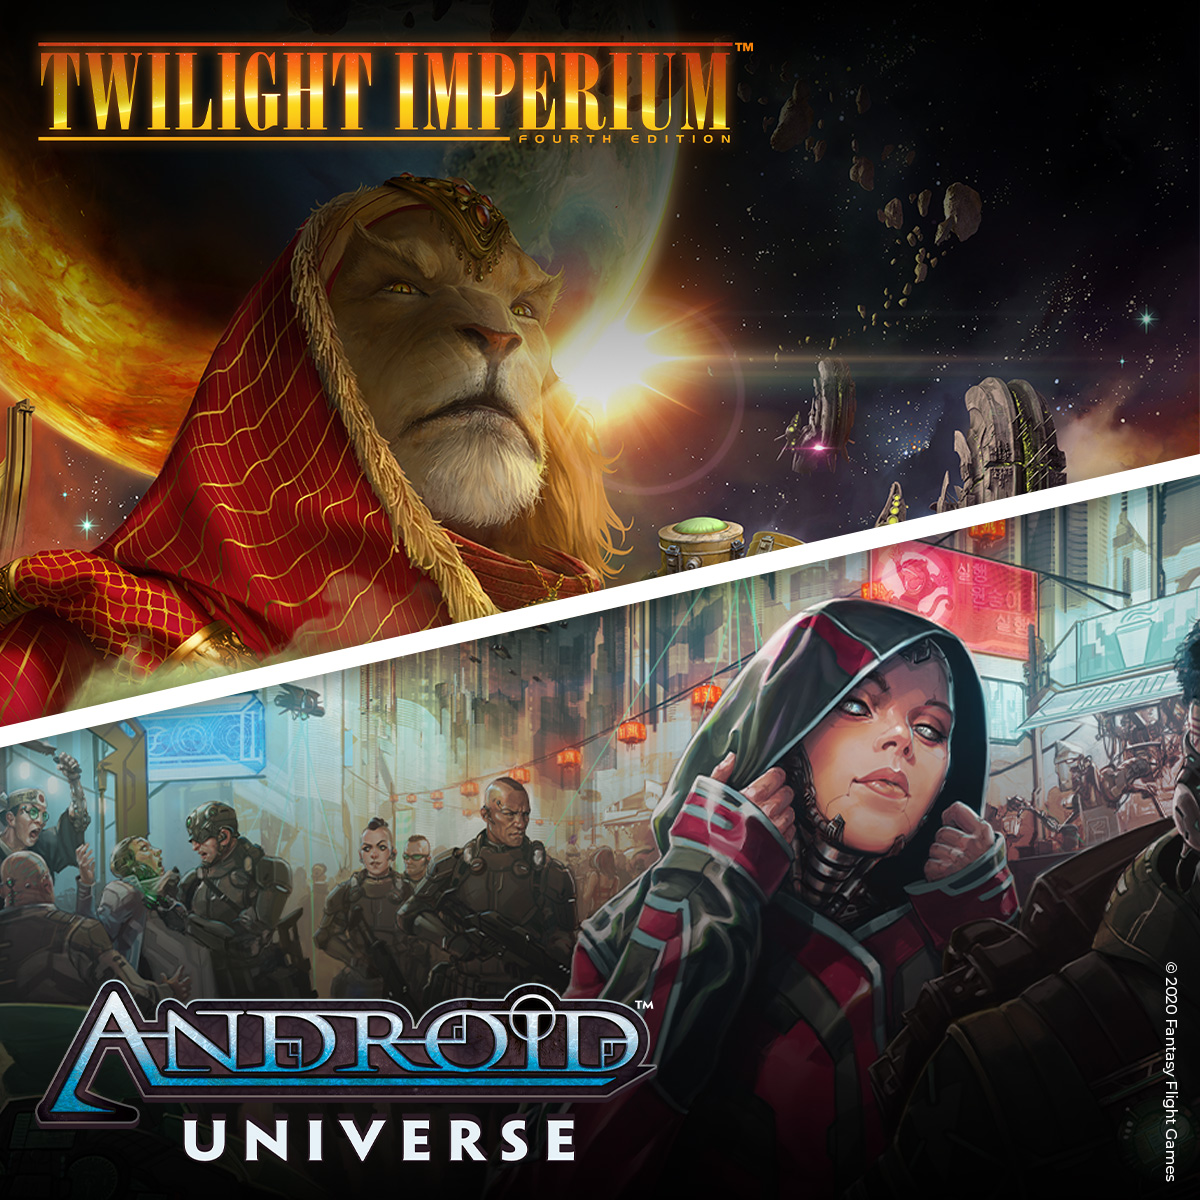 Twilight Imperium and Android comics! CMON is proud to partner with Asmodee to bring these worlds to life! Full announcement: https://t.co/t4izD4B4c7  #twilightimperium #androiduniverse #cmongames #asmodee   #fantasyflightgames https://t.co/z7rHLajwXb